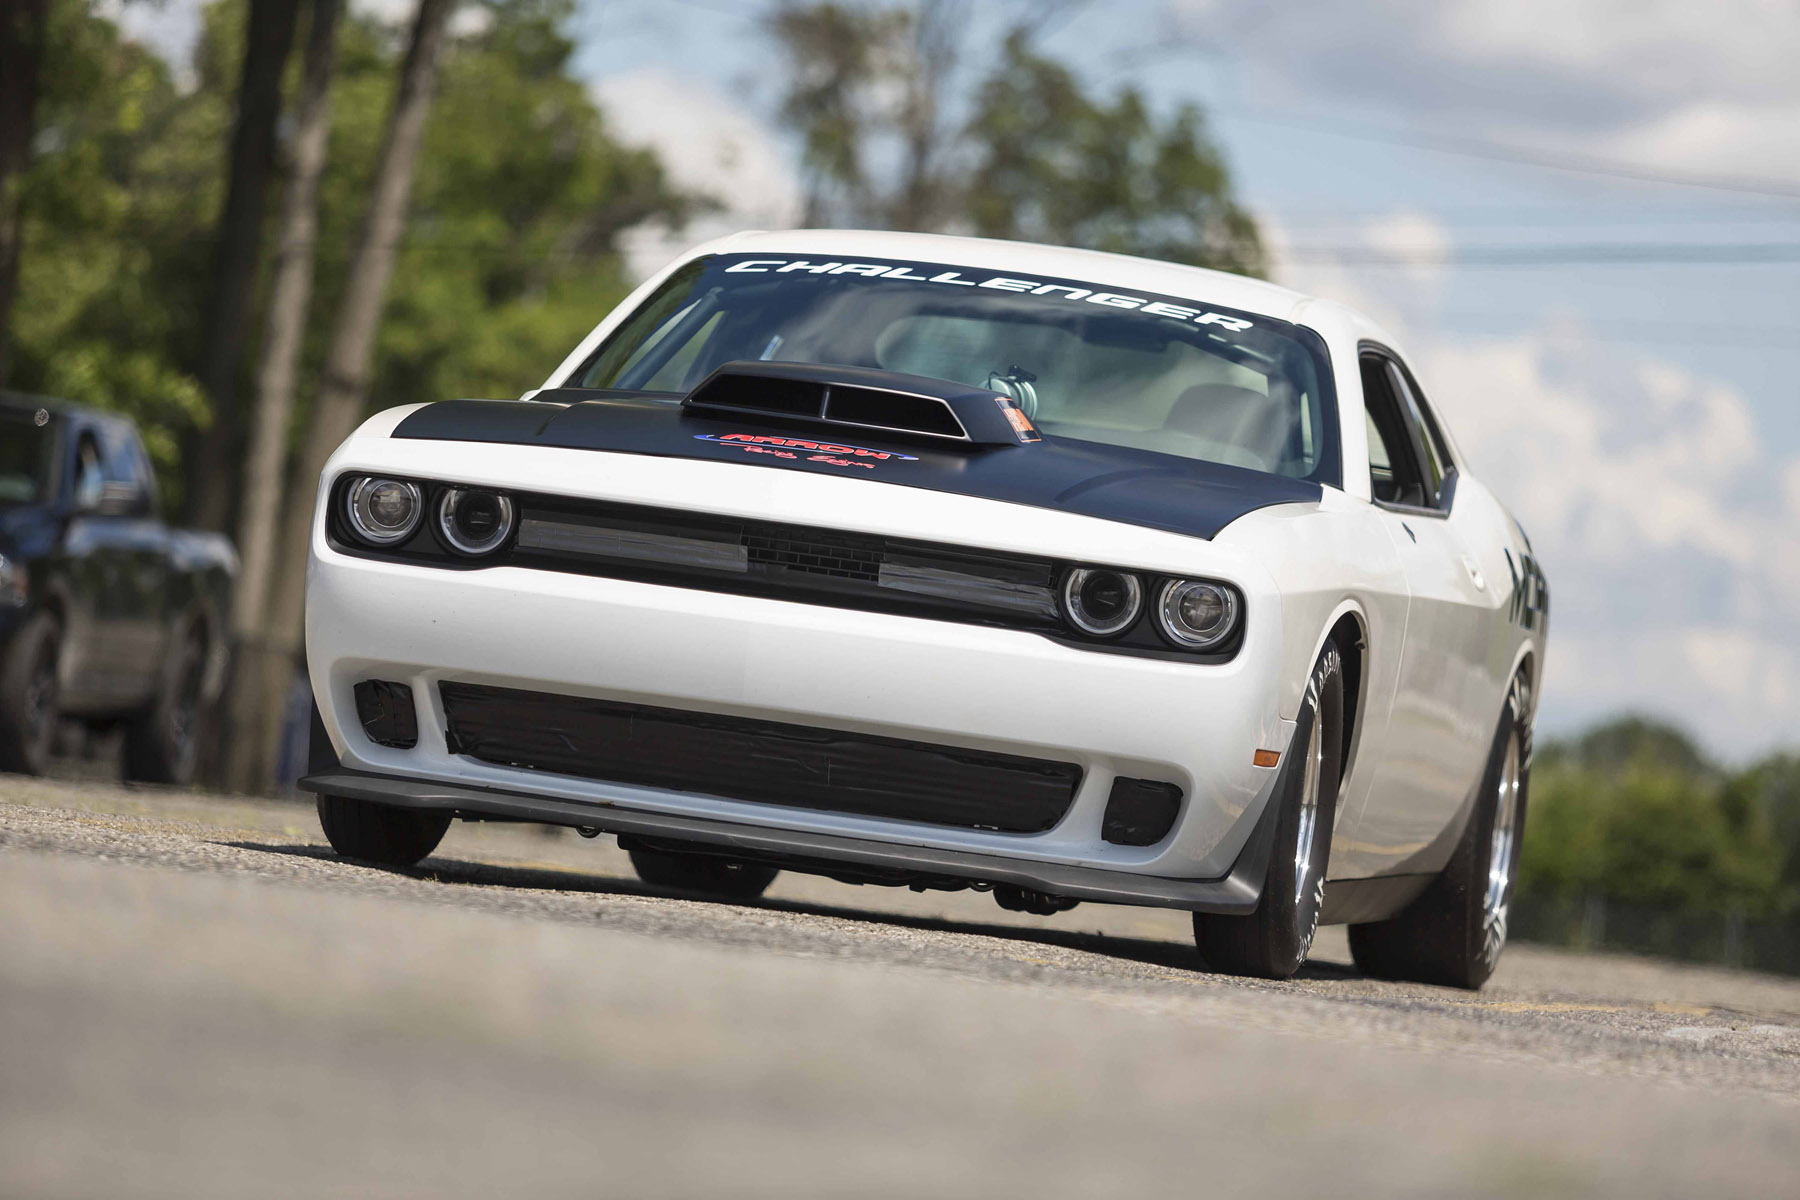 Mopar Previews 2015 Dodge Challenger Drag Pak Test Vehicle [VIDEO]